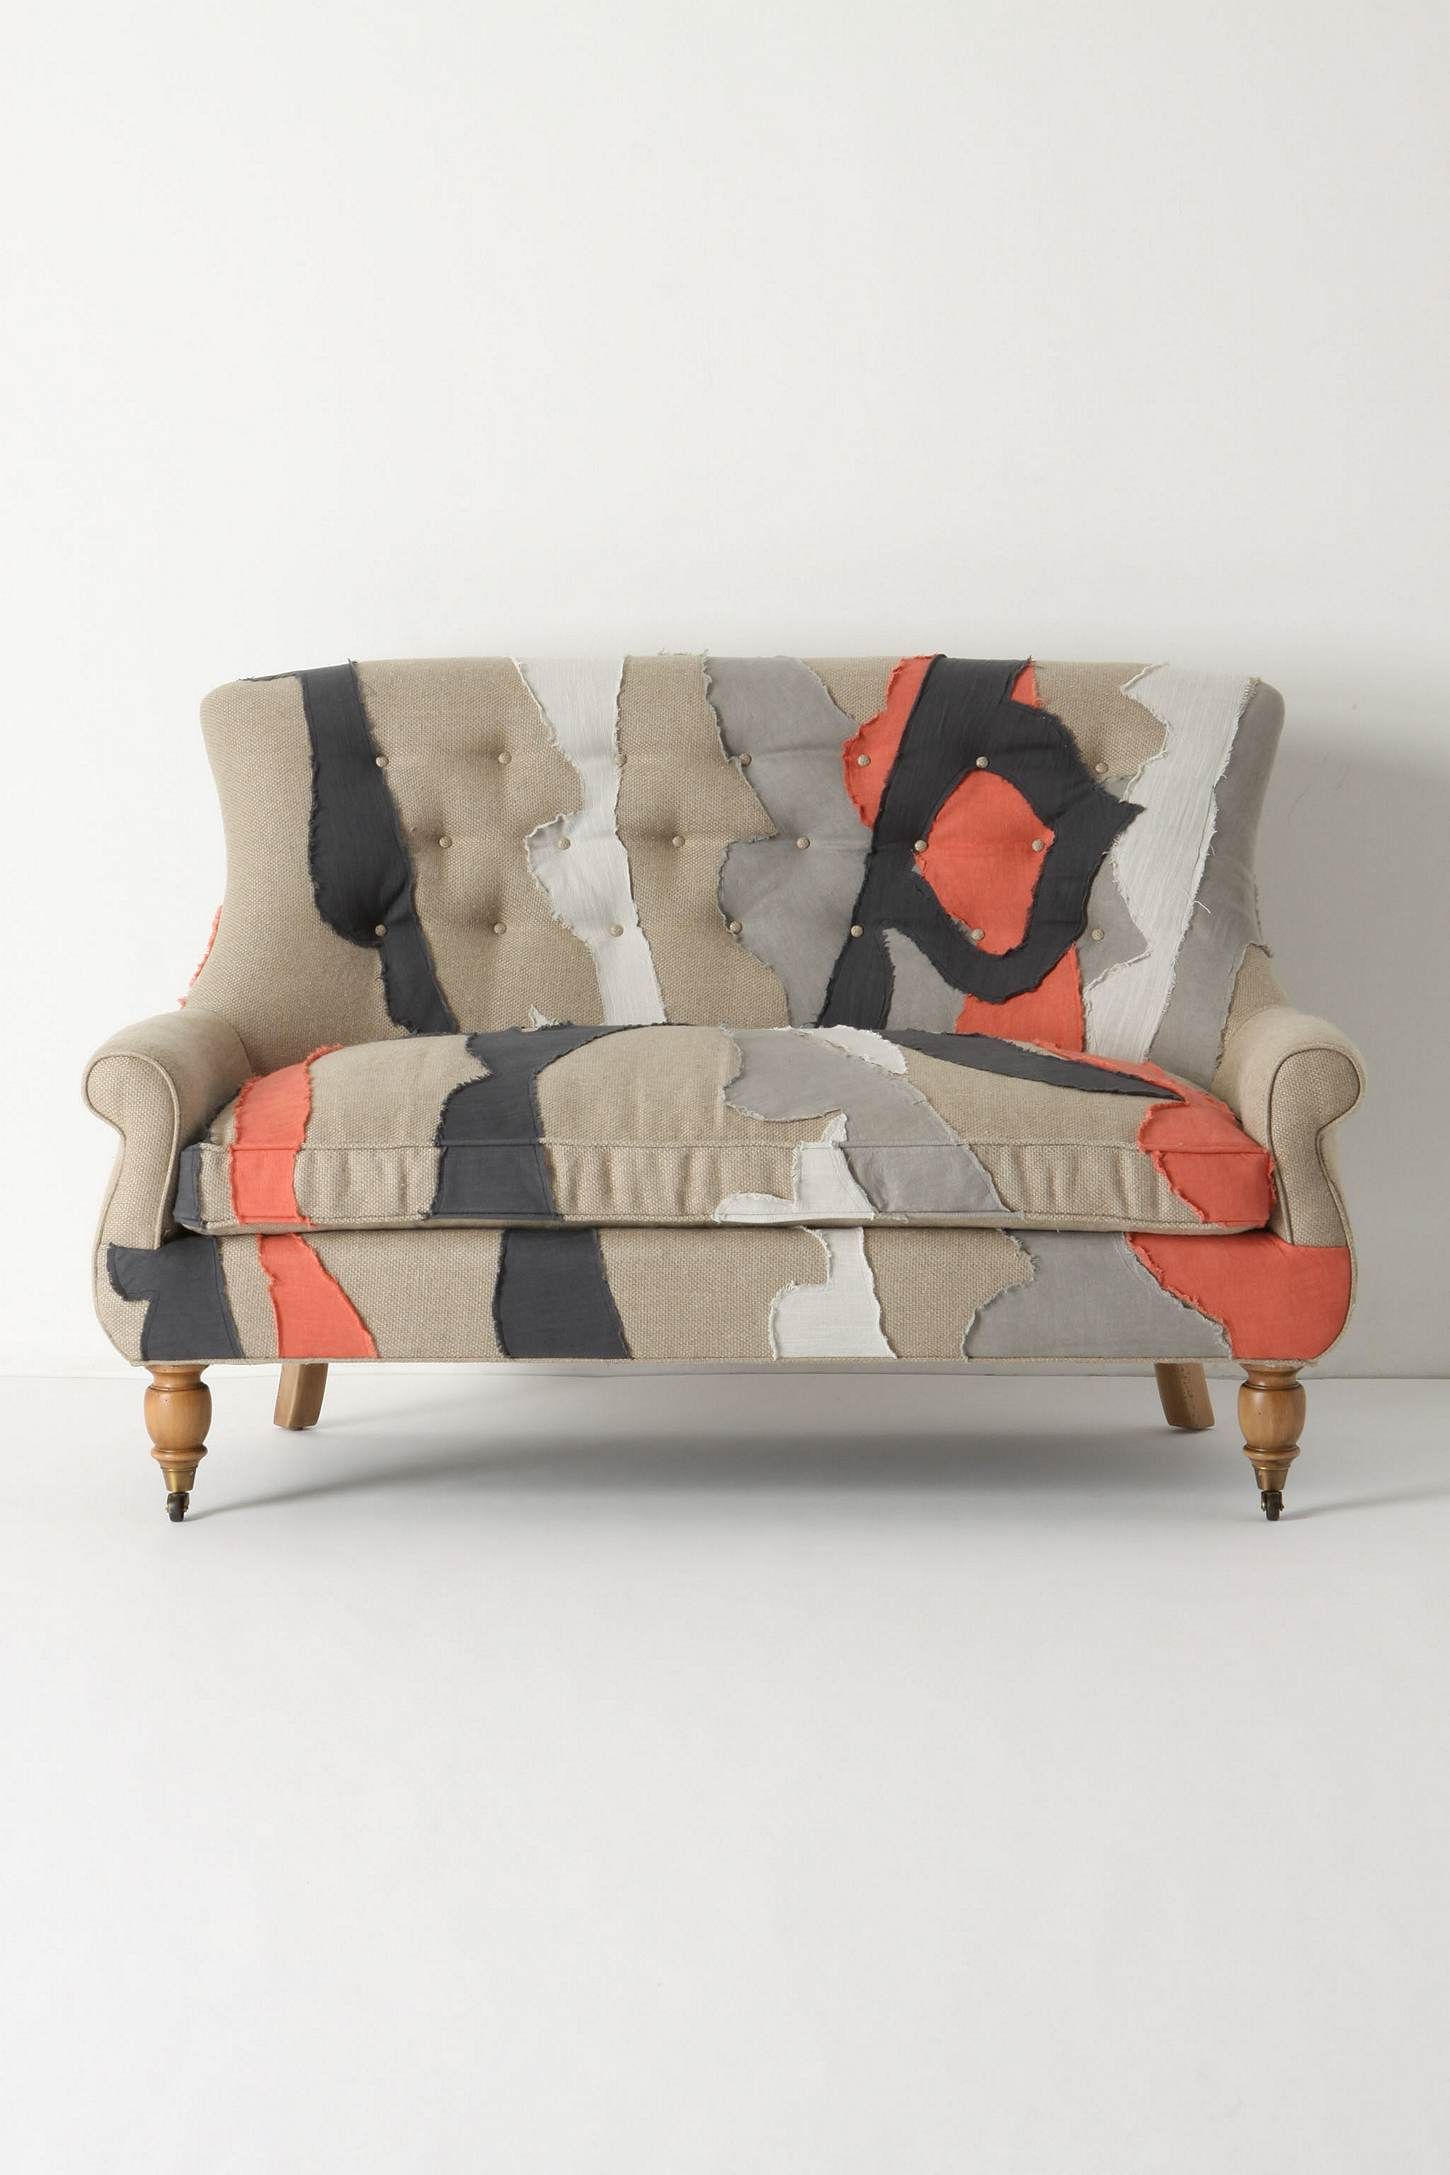 anthropologie sofa coaster contemporary styled futon sleeper astrid settee patchwork wishlist